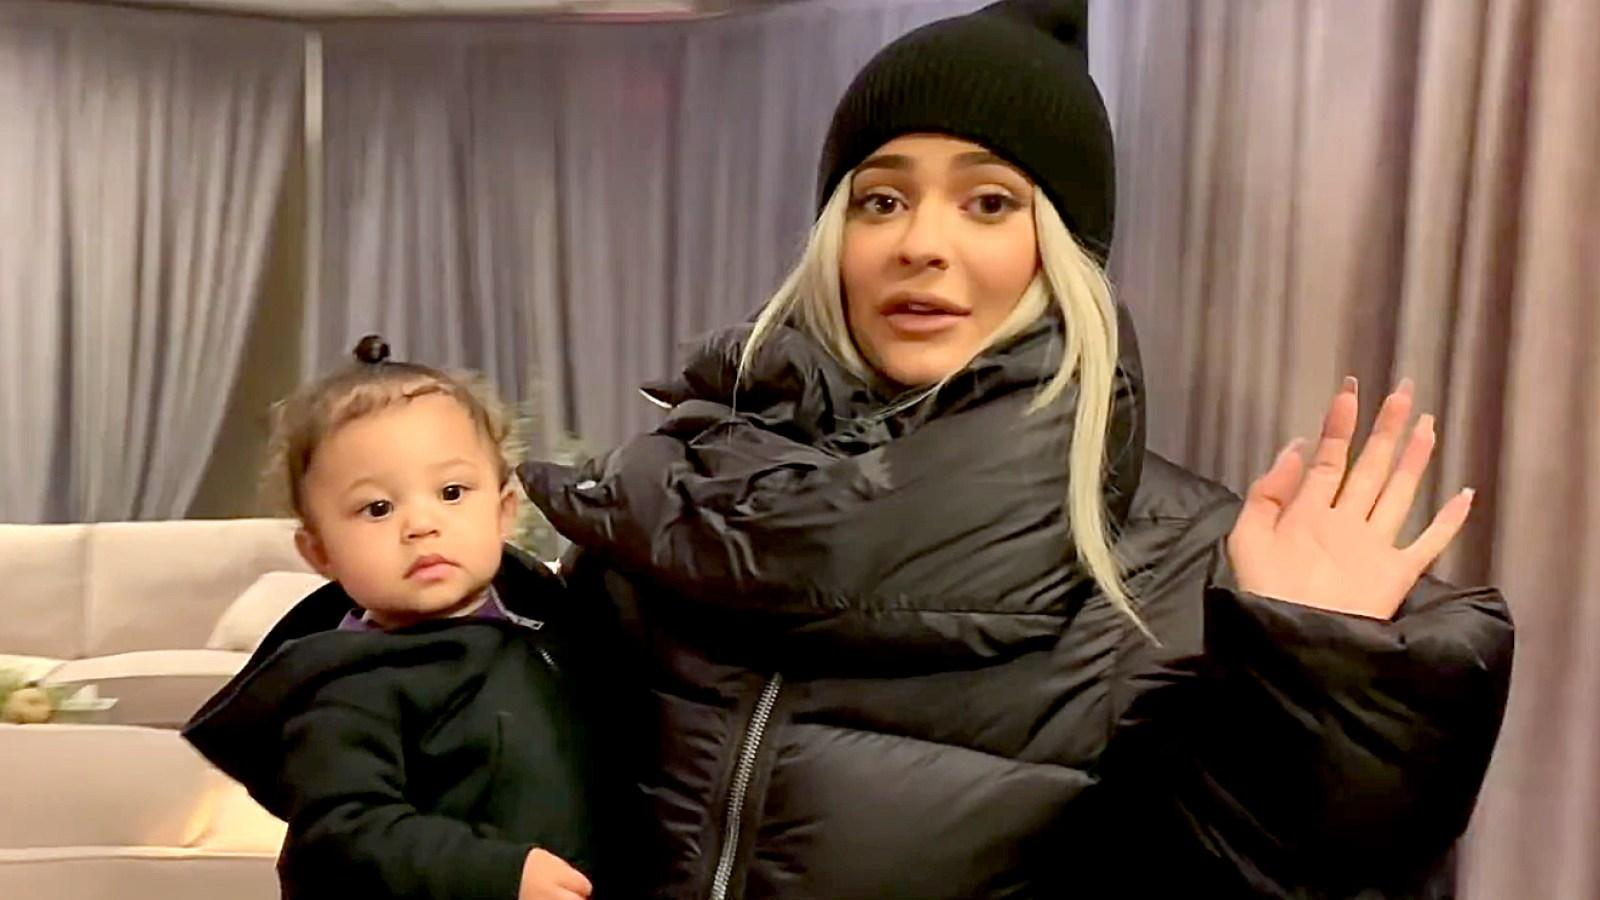 Kylie Jenner Takes Stormi Webster To Paradise Ahead Oh Her First Birthday - Watch The Jaw-Dropping Video